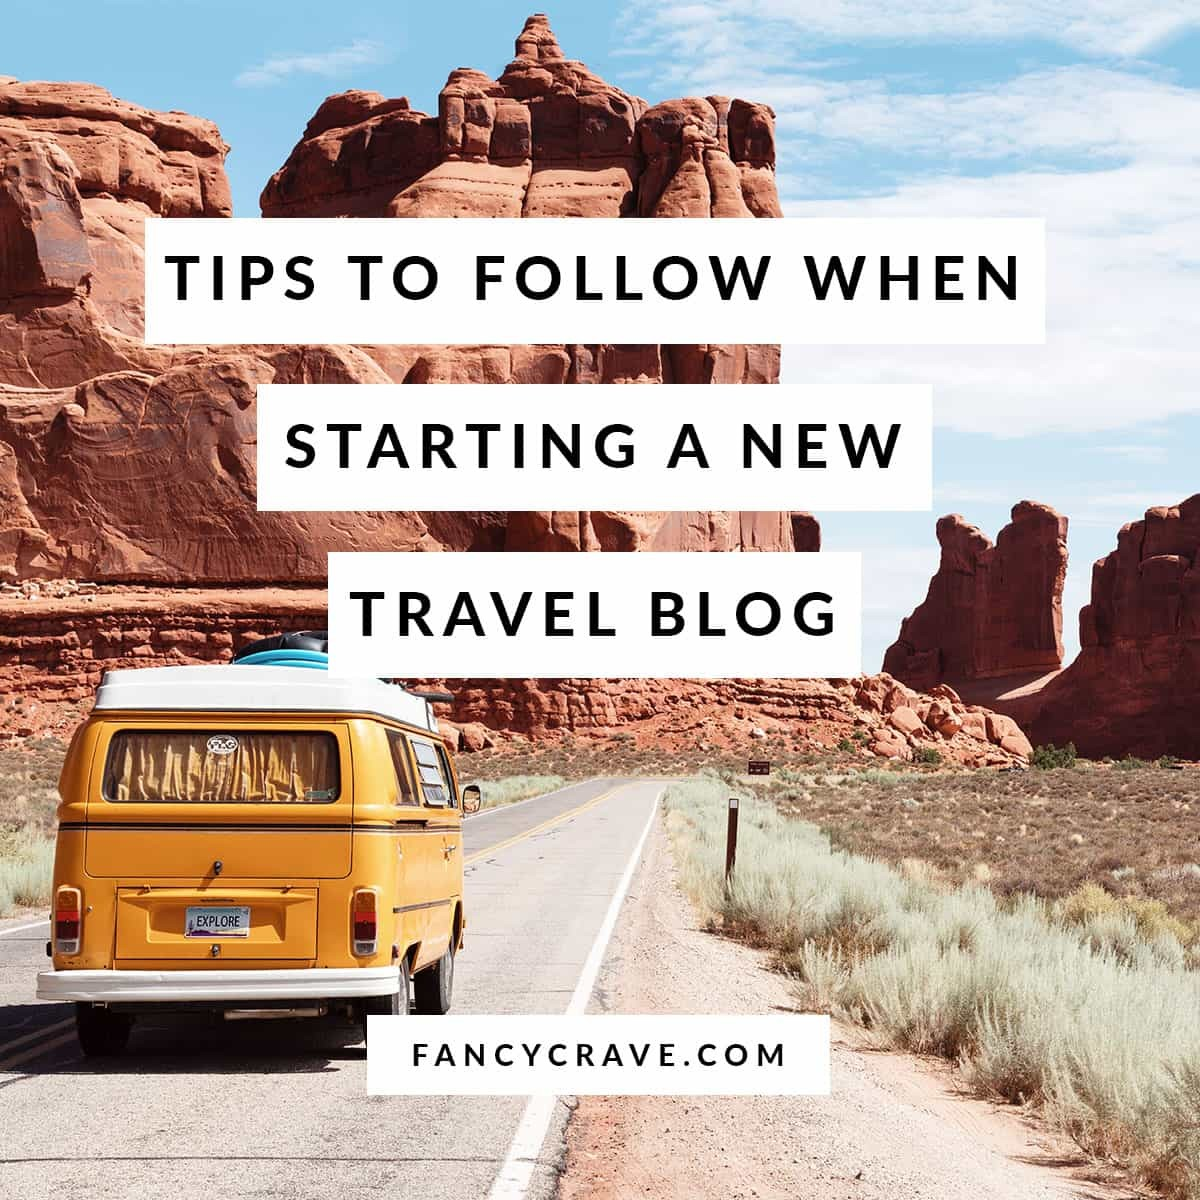 Tips-To-Follow-When-Starting-a-New-Travel-Blog-min-1